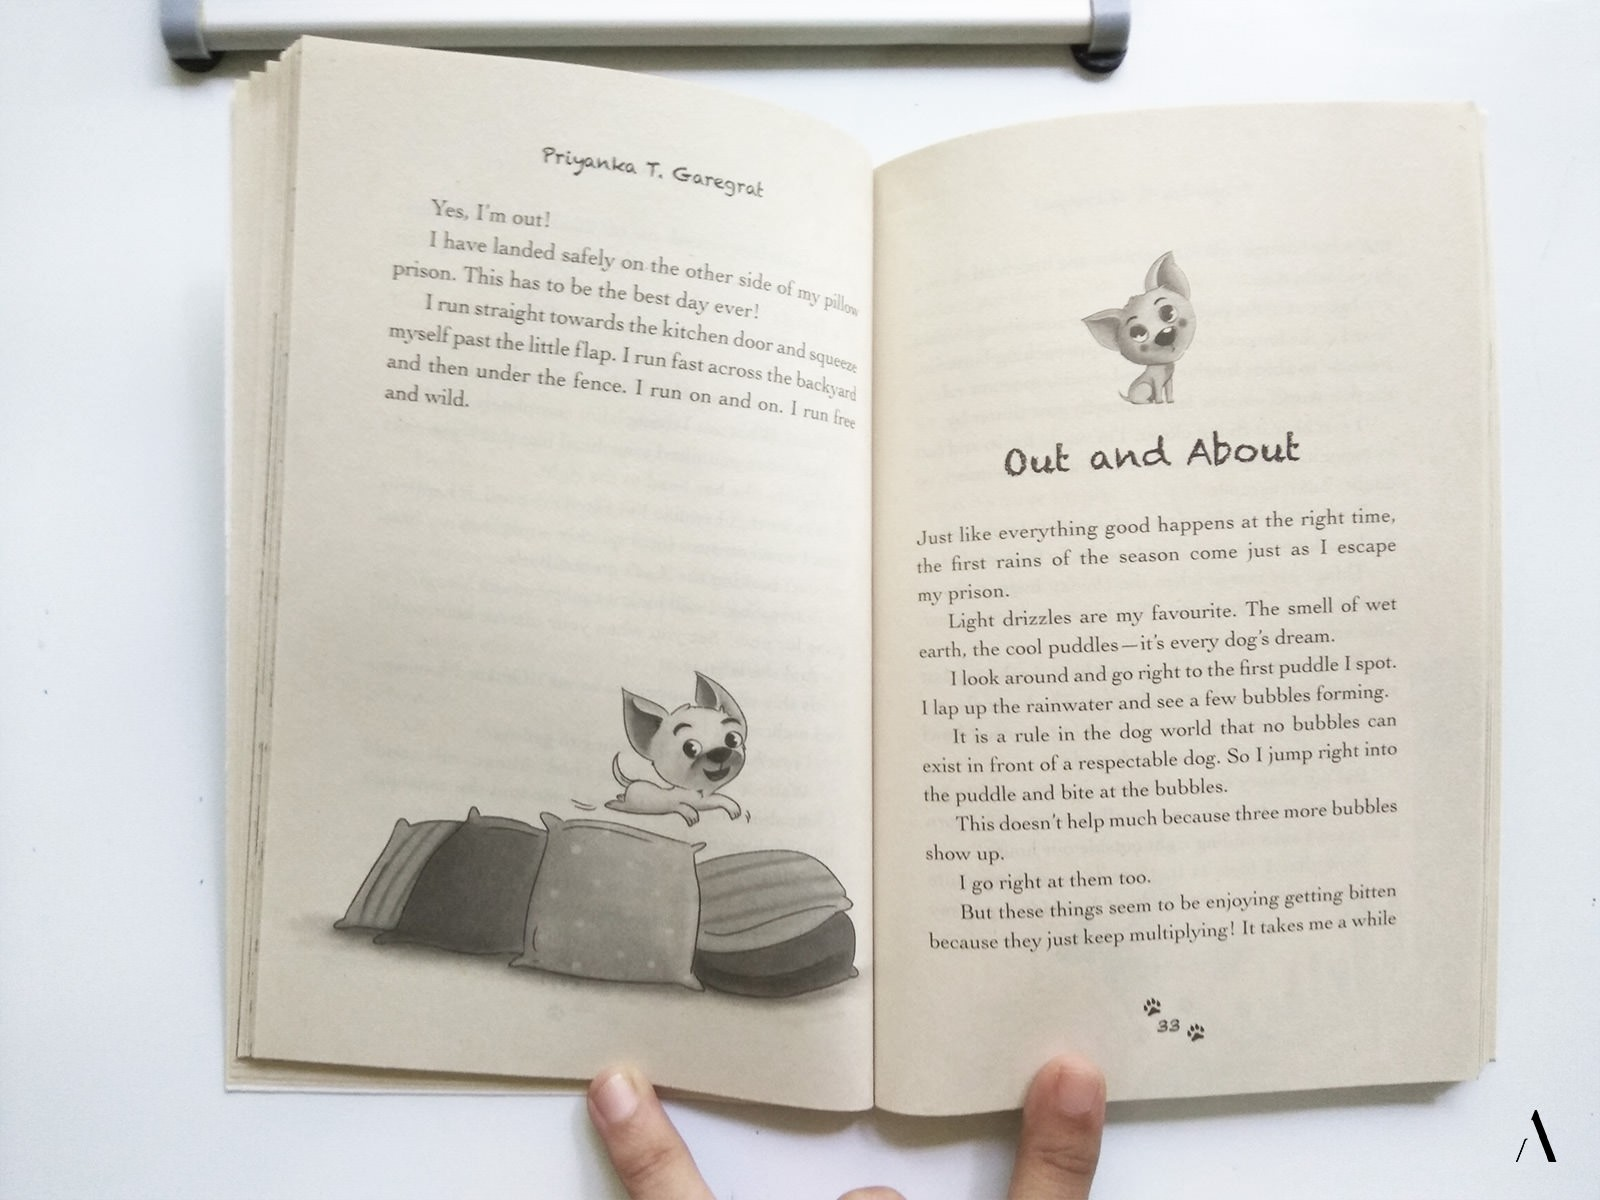 Pages from the illustrated Children's novel, Kitten the dog